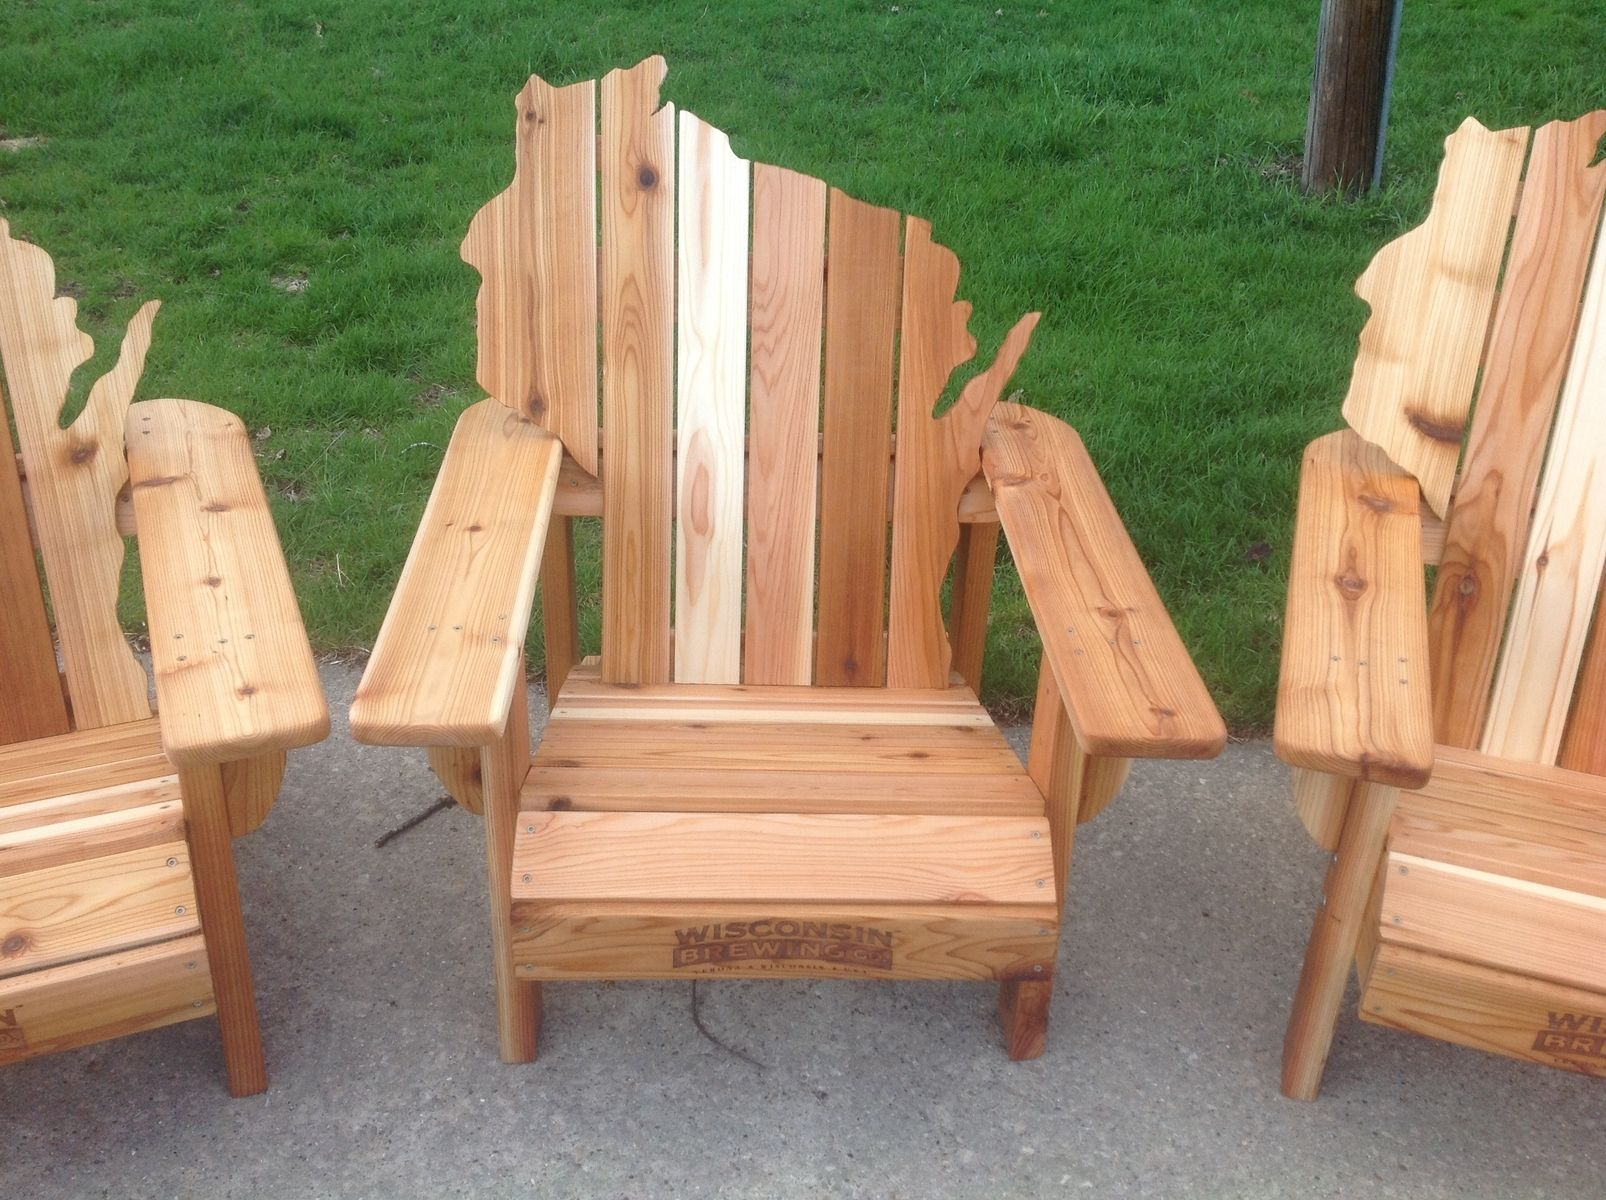 adirondack chair reviews armrest covers office handmade cedar wisconsin chairs with personalized laser engraving. by drew's up north ...